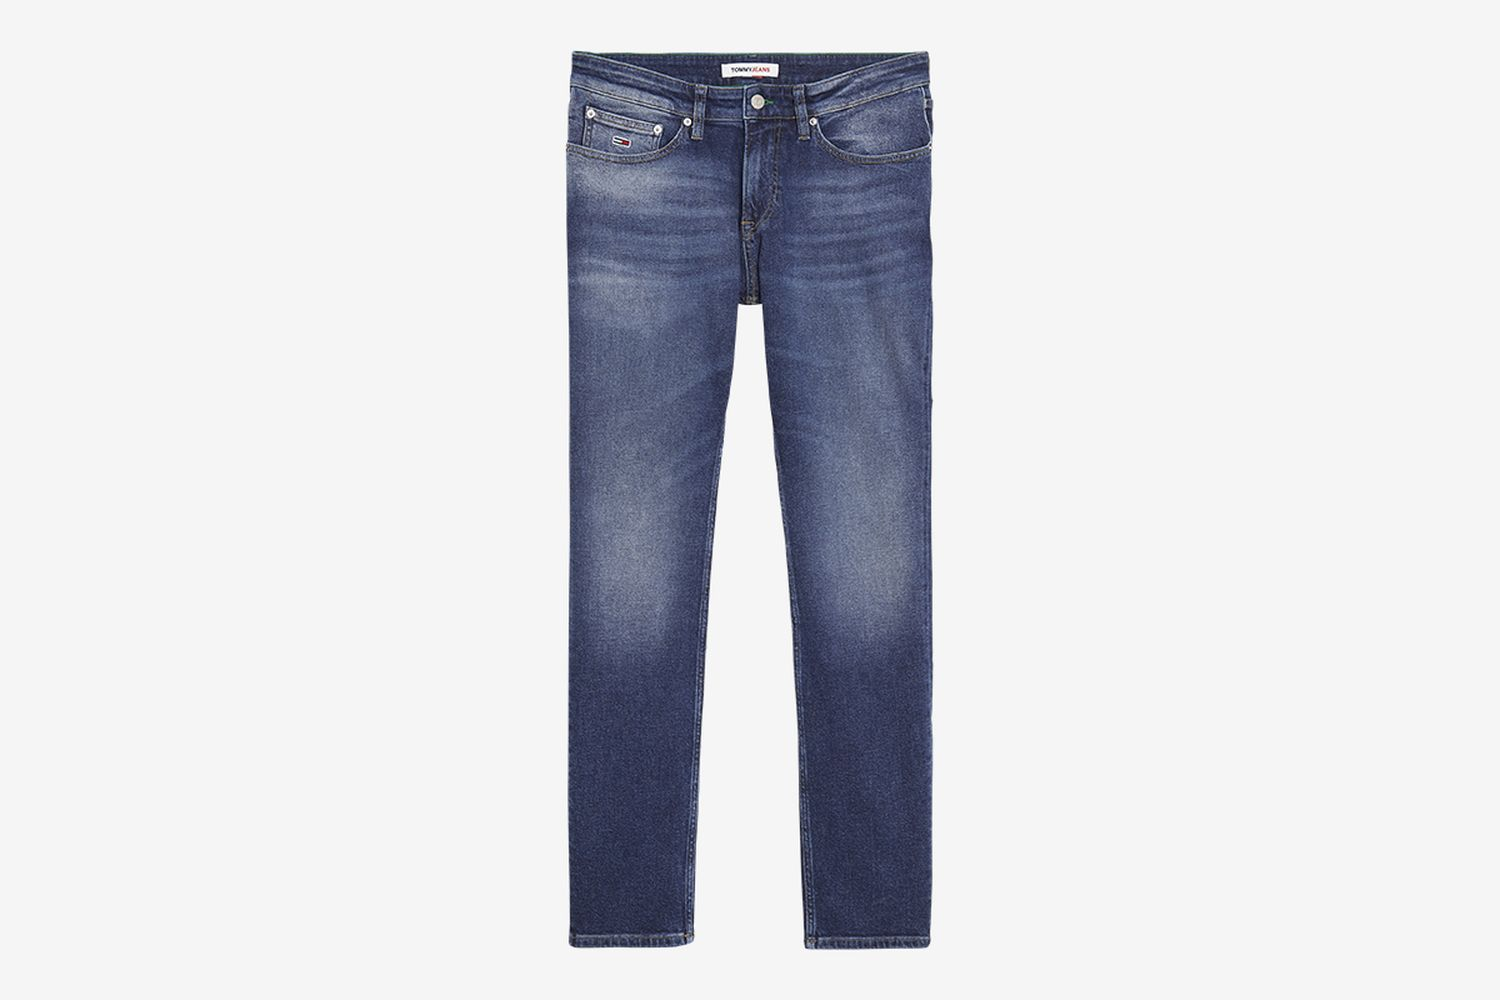 Slim Fit Washed and Worn Jean